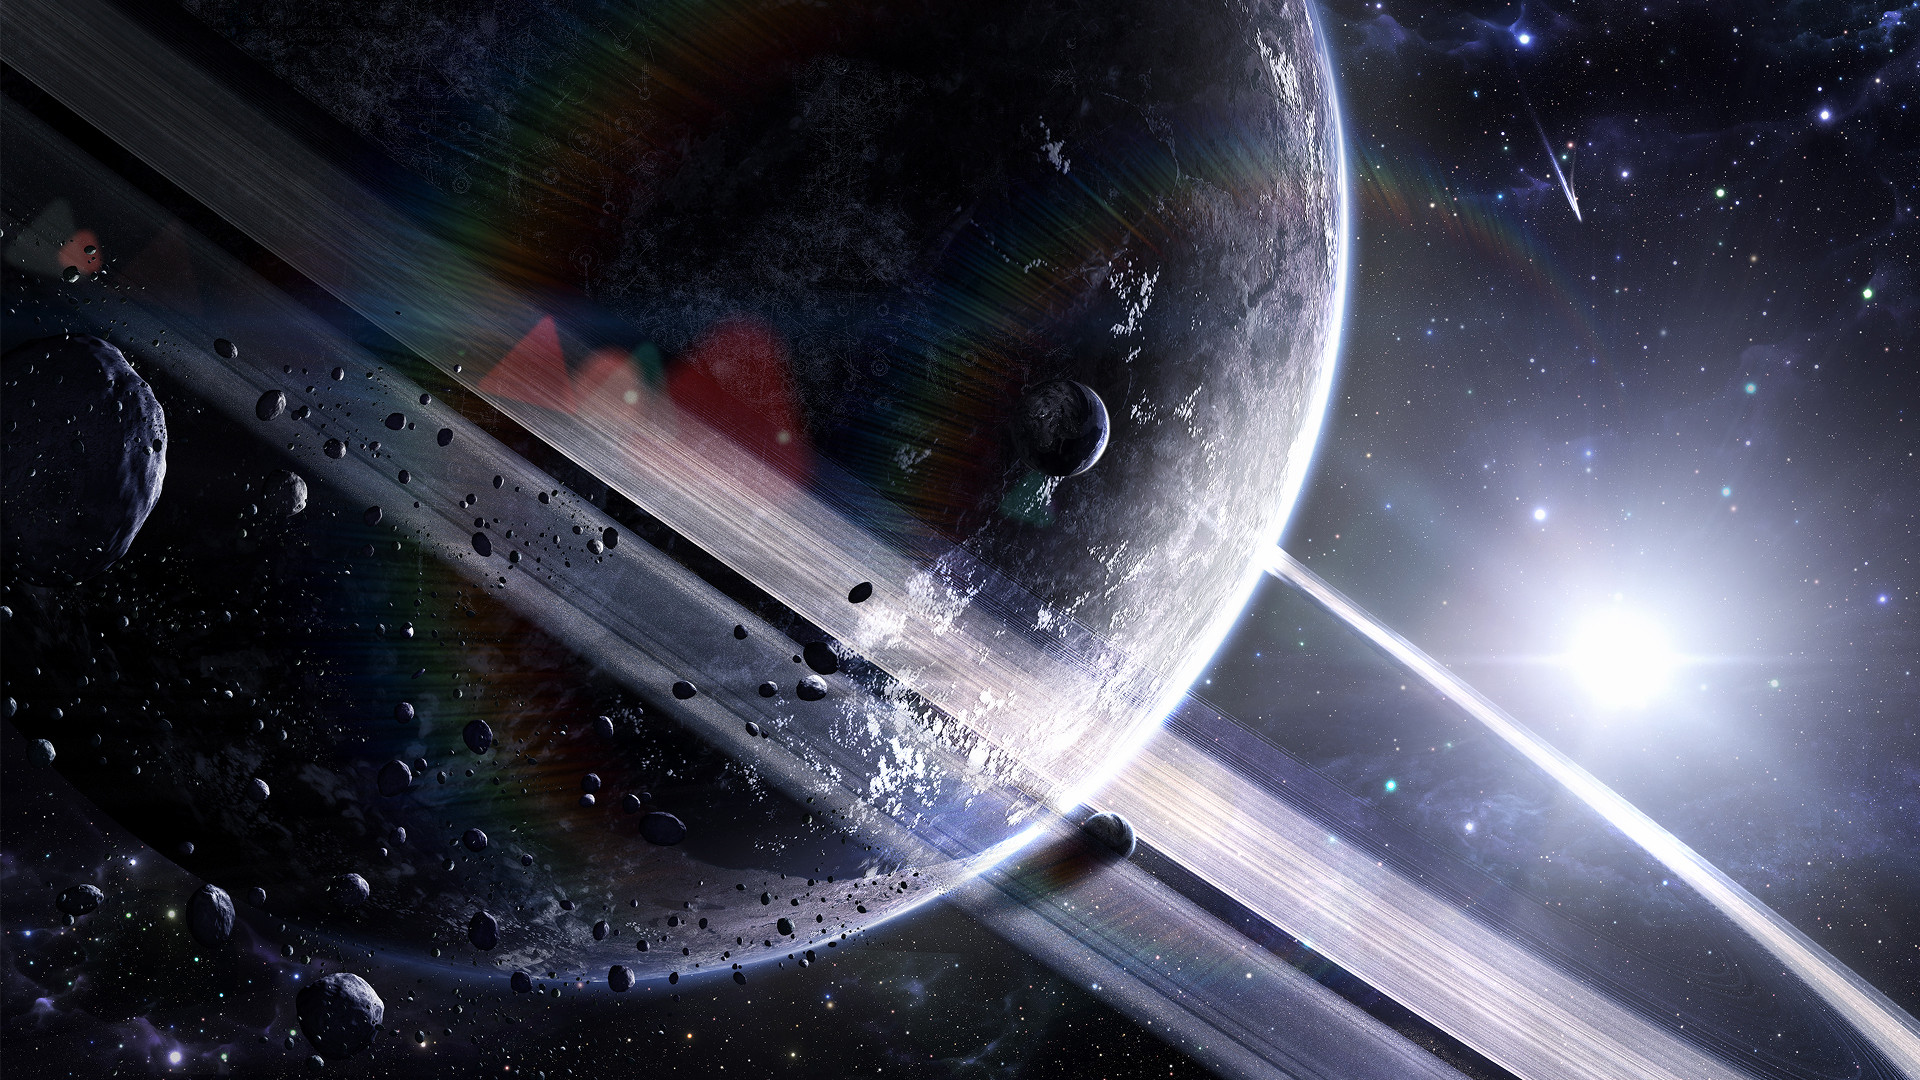 Space-Hd-Wallpapers-1080P-wallpaper | Wallpapers Photos Pictures